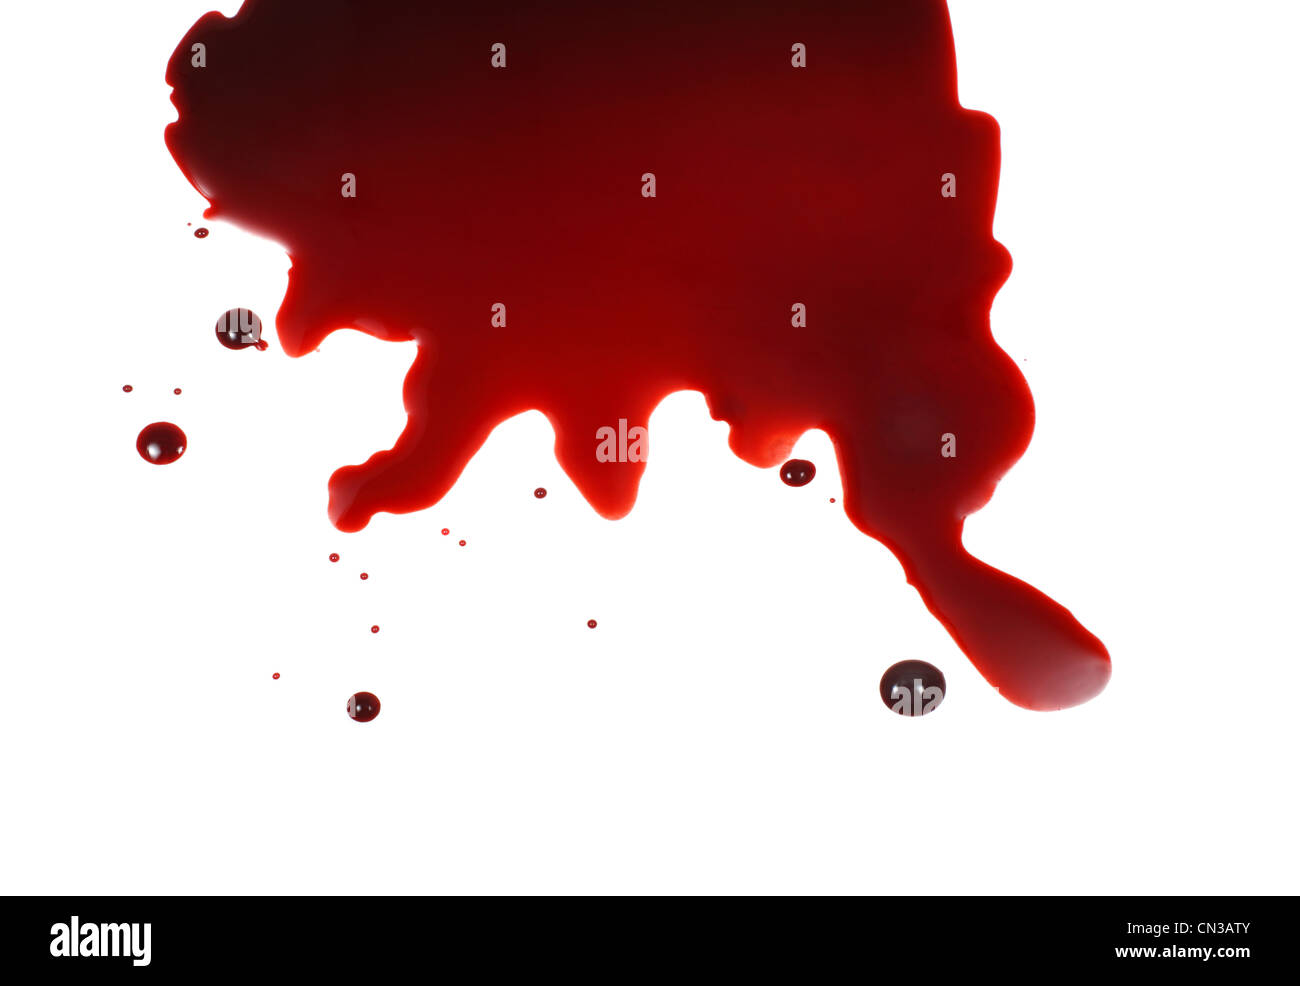 Blood spattered against white background - Stock Image